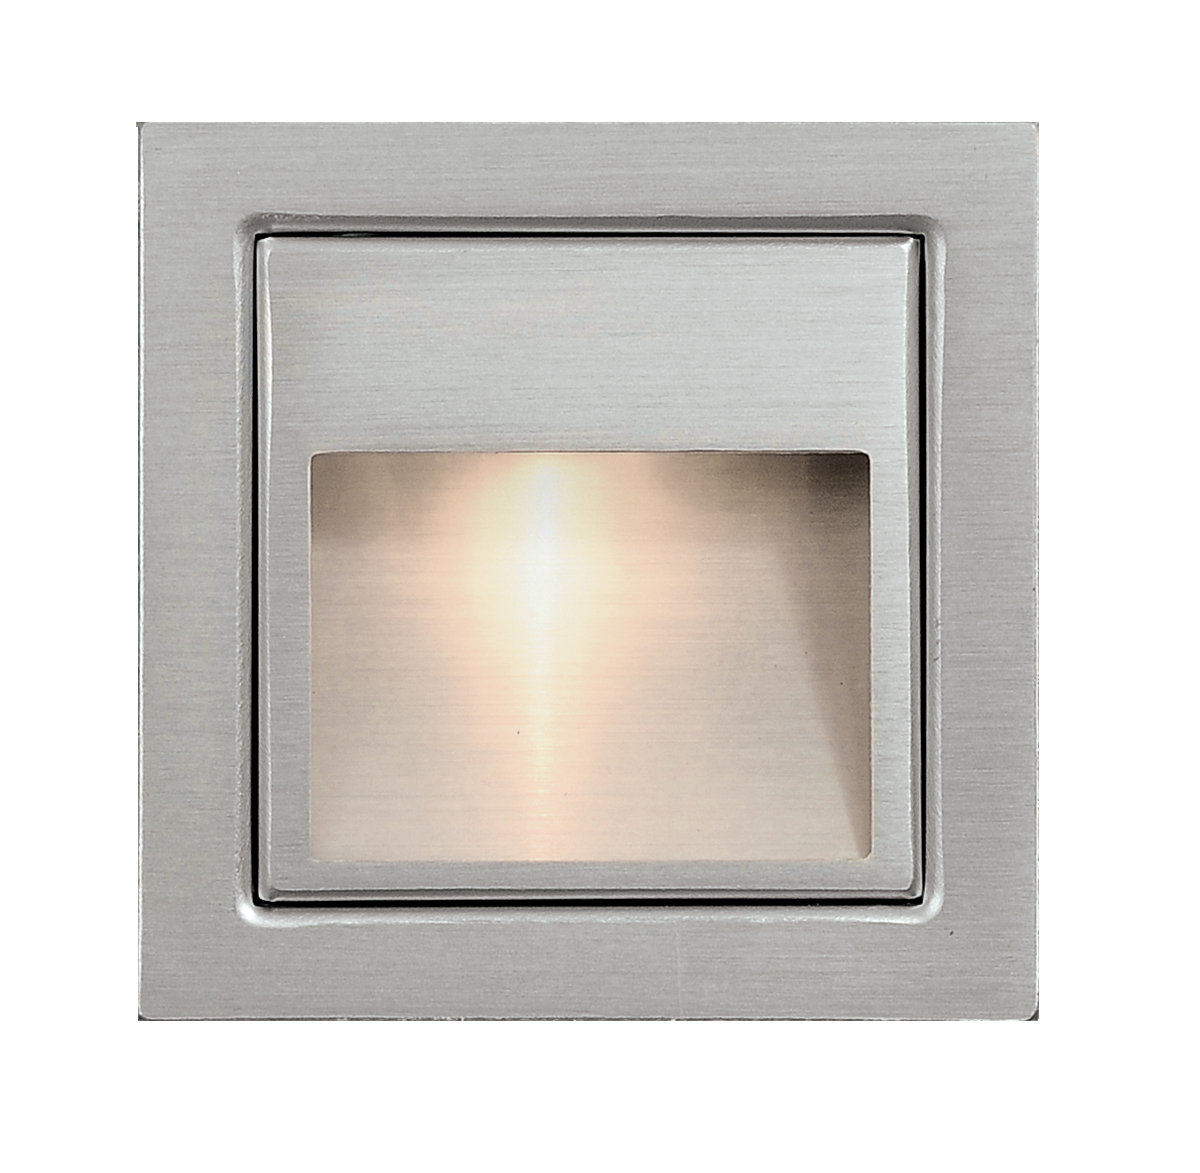 Step Led Master Wall Recessed By Edge Lighting Step Kit